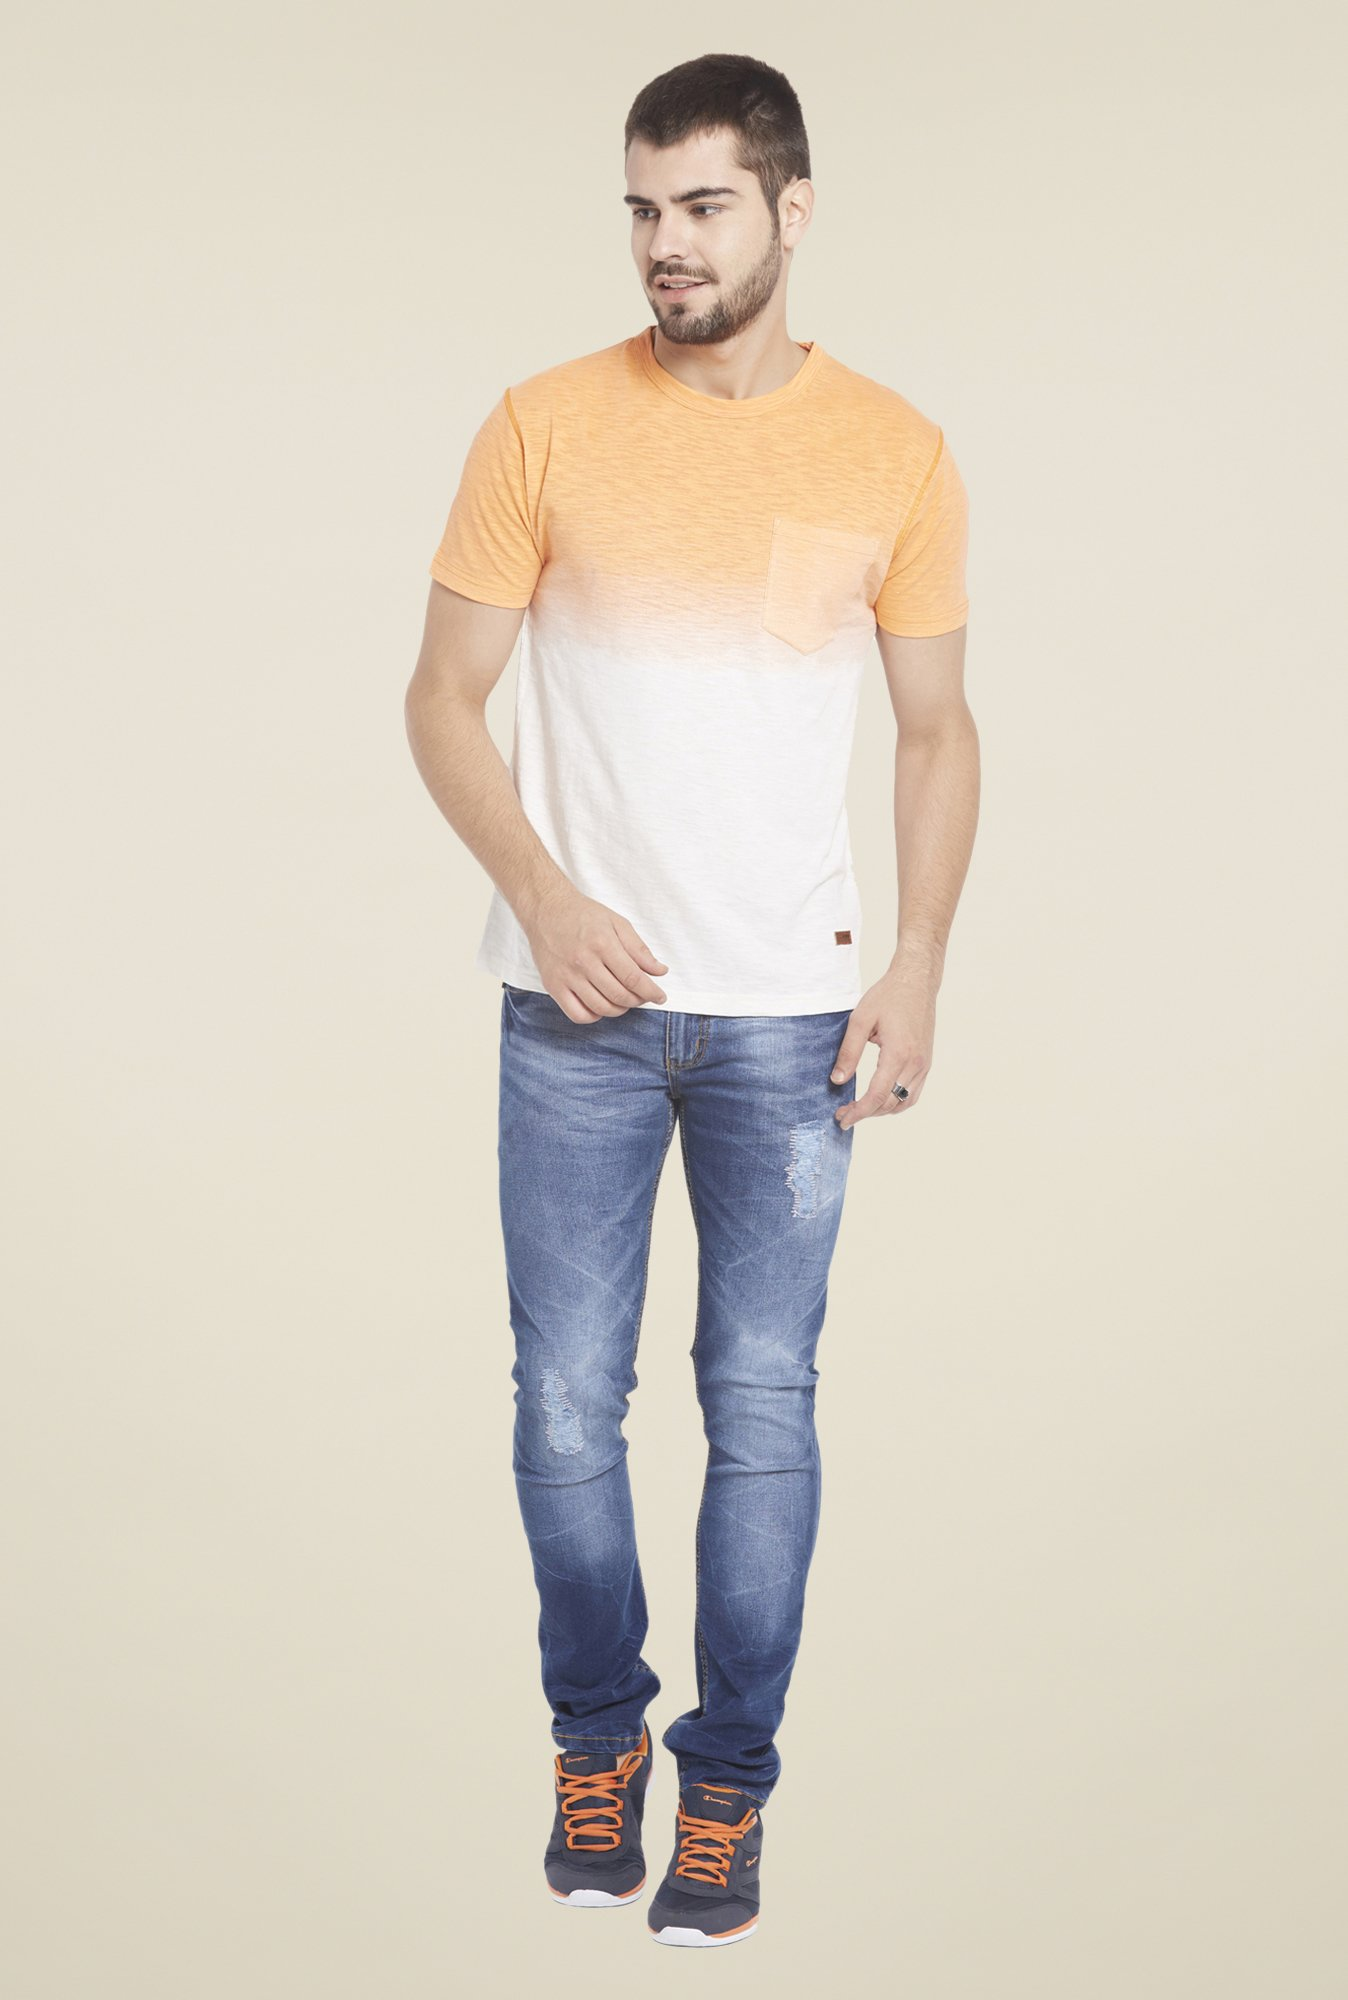 Globus White & Orange Ombre T Shirt